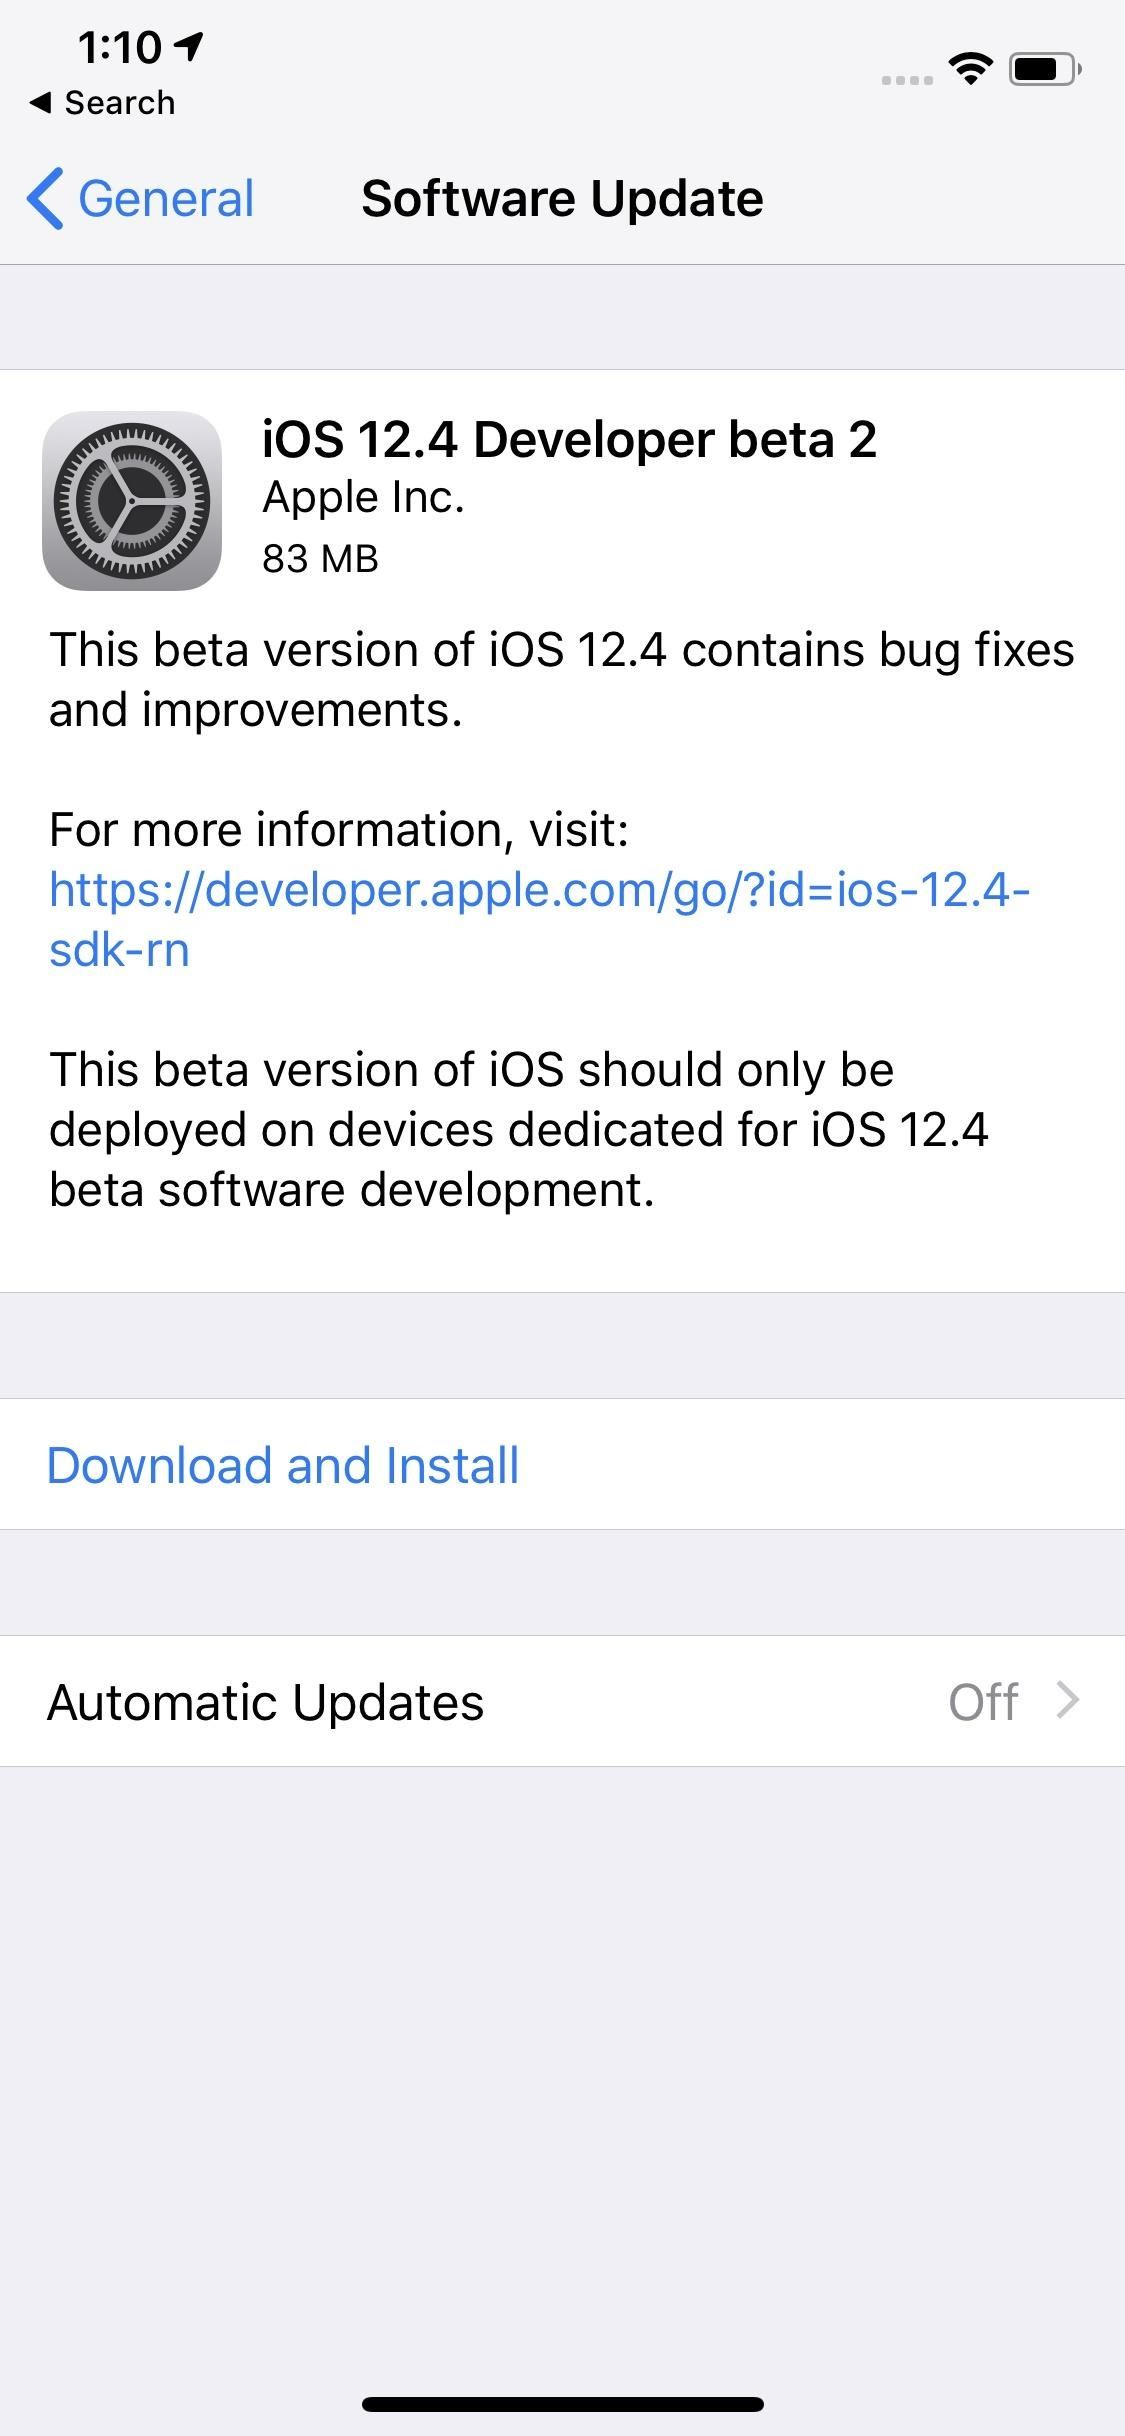 Apple Releases Second iOS 12.4 Beta for iPhone to Developers Today